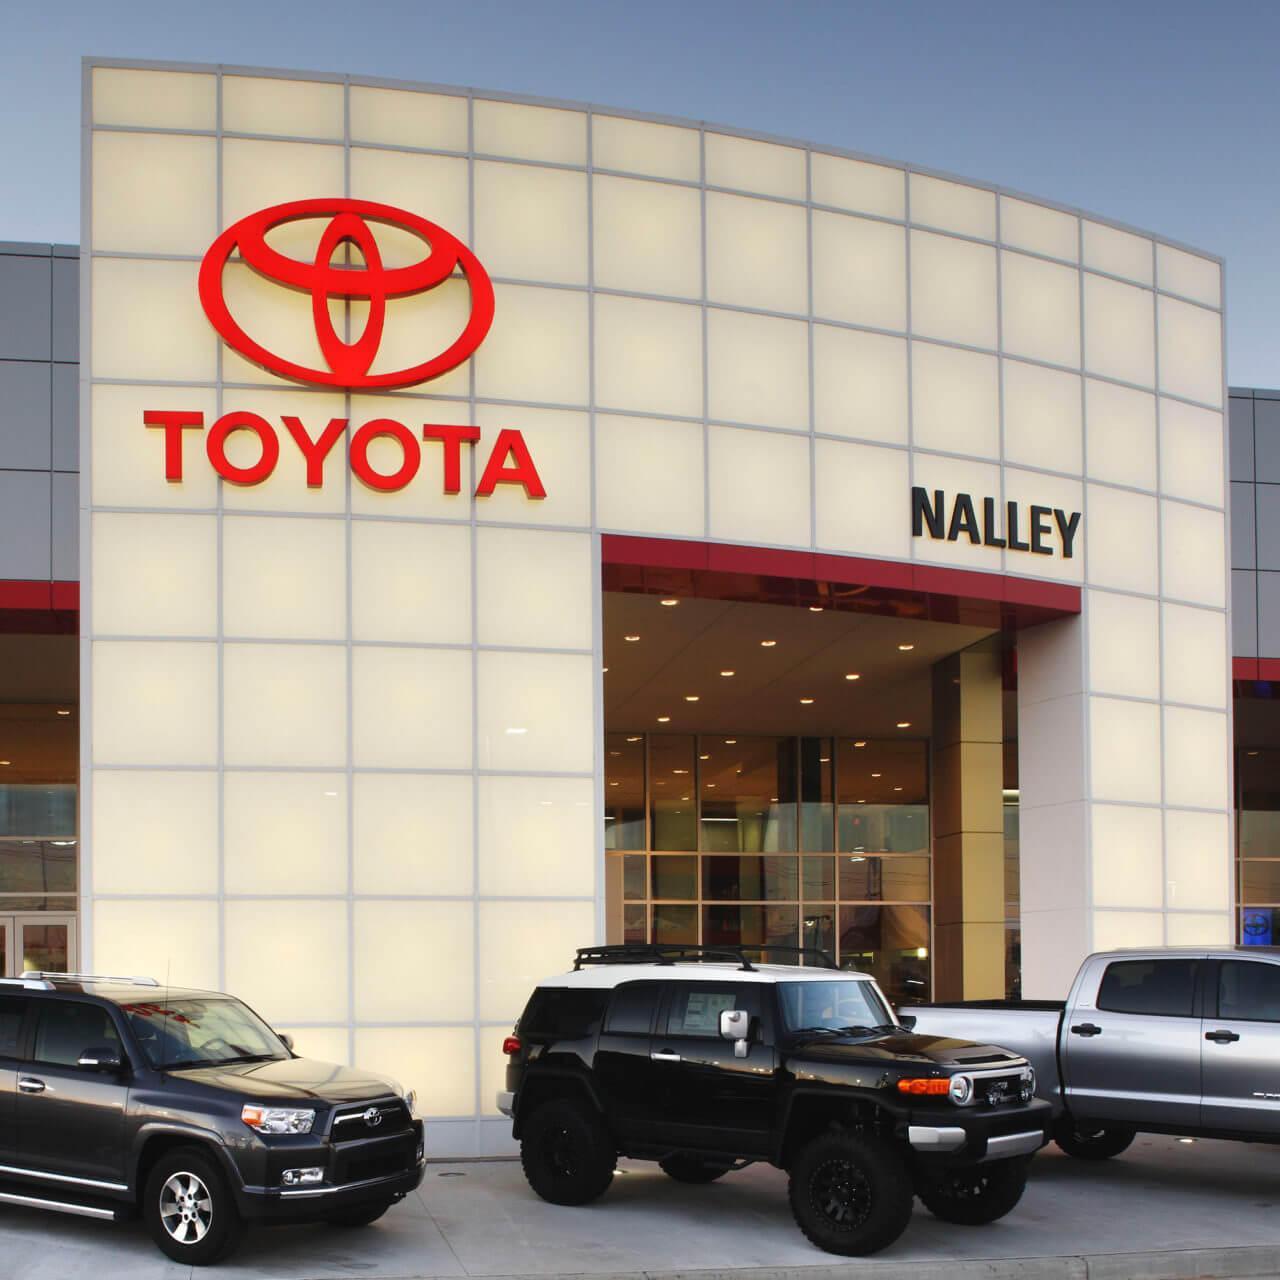 Nalley Toyota Of Roswell U2013 PRAXIS3